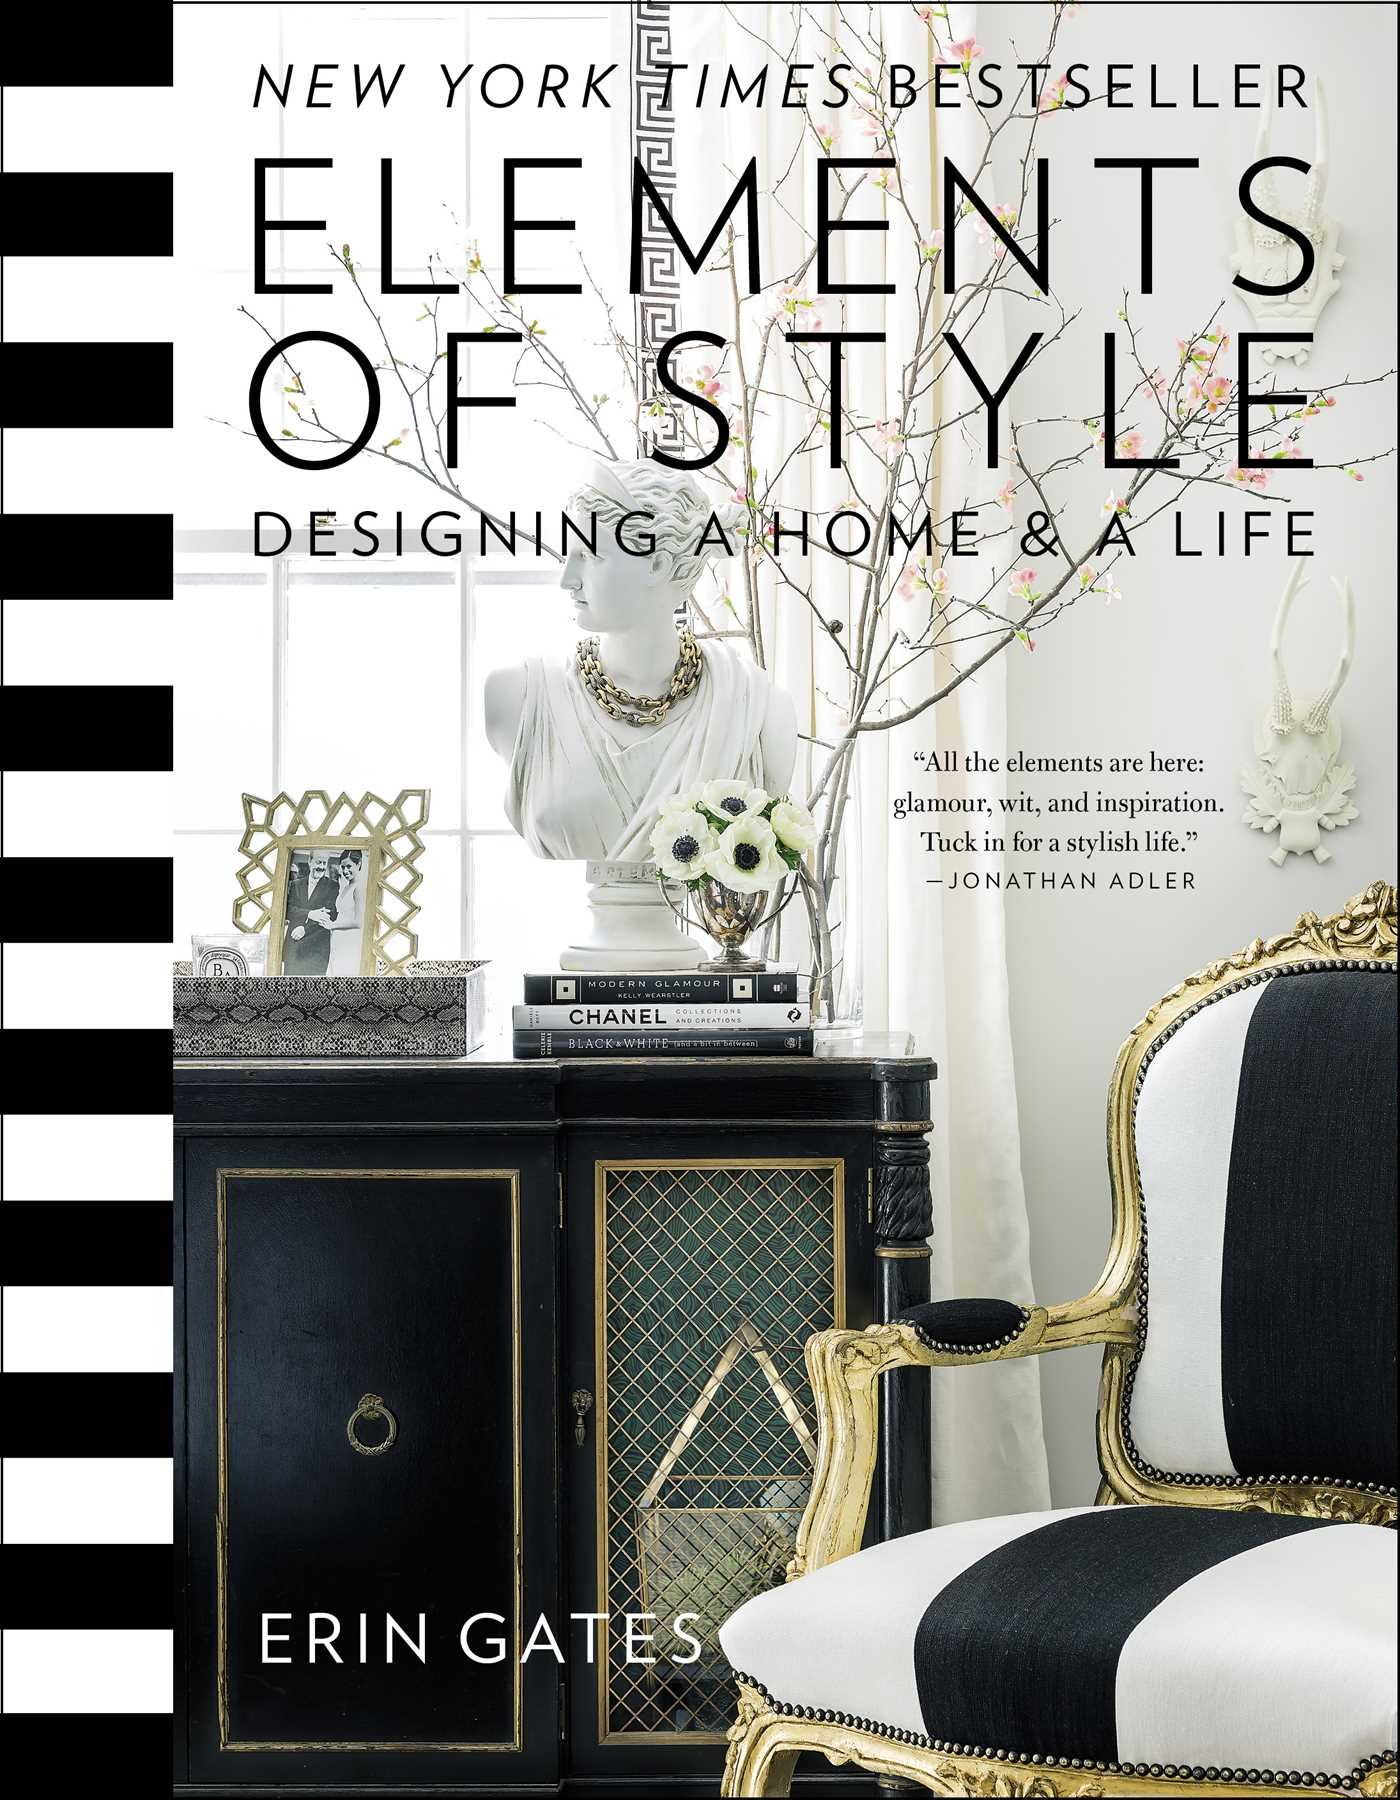 In today's post I'll be sharing a few books that I consider home decor book essentials for people who love classic style. I already own a few of these, but otherwise today's post is basically my Christmas wish list! Ha! Enjoy. :)